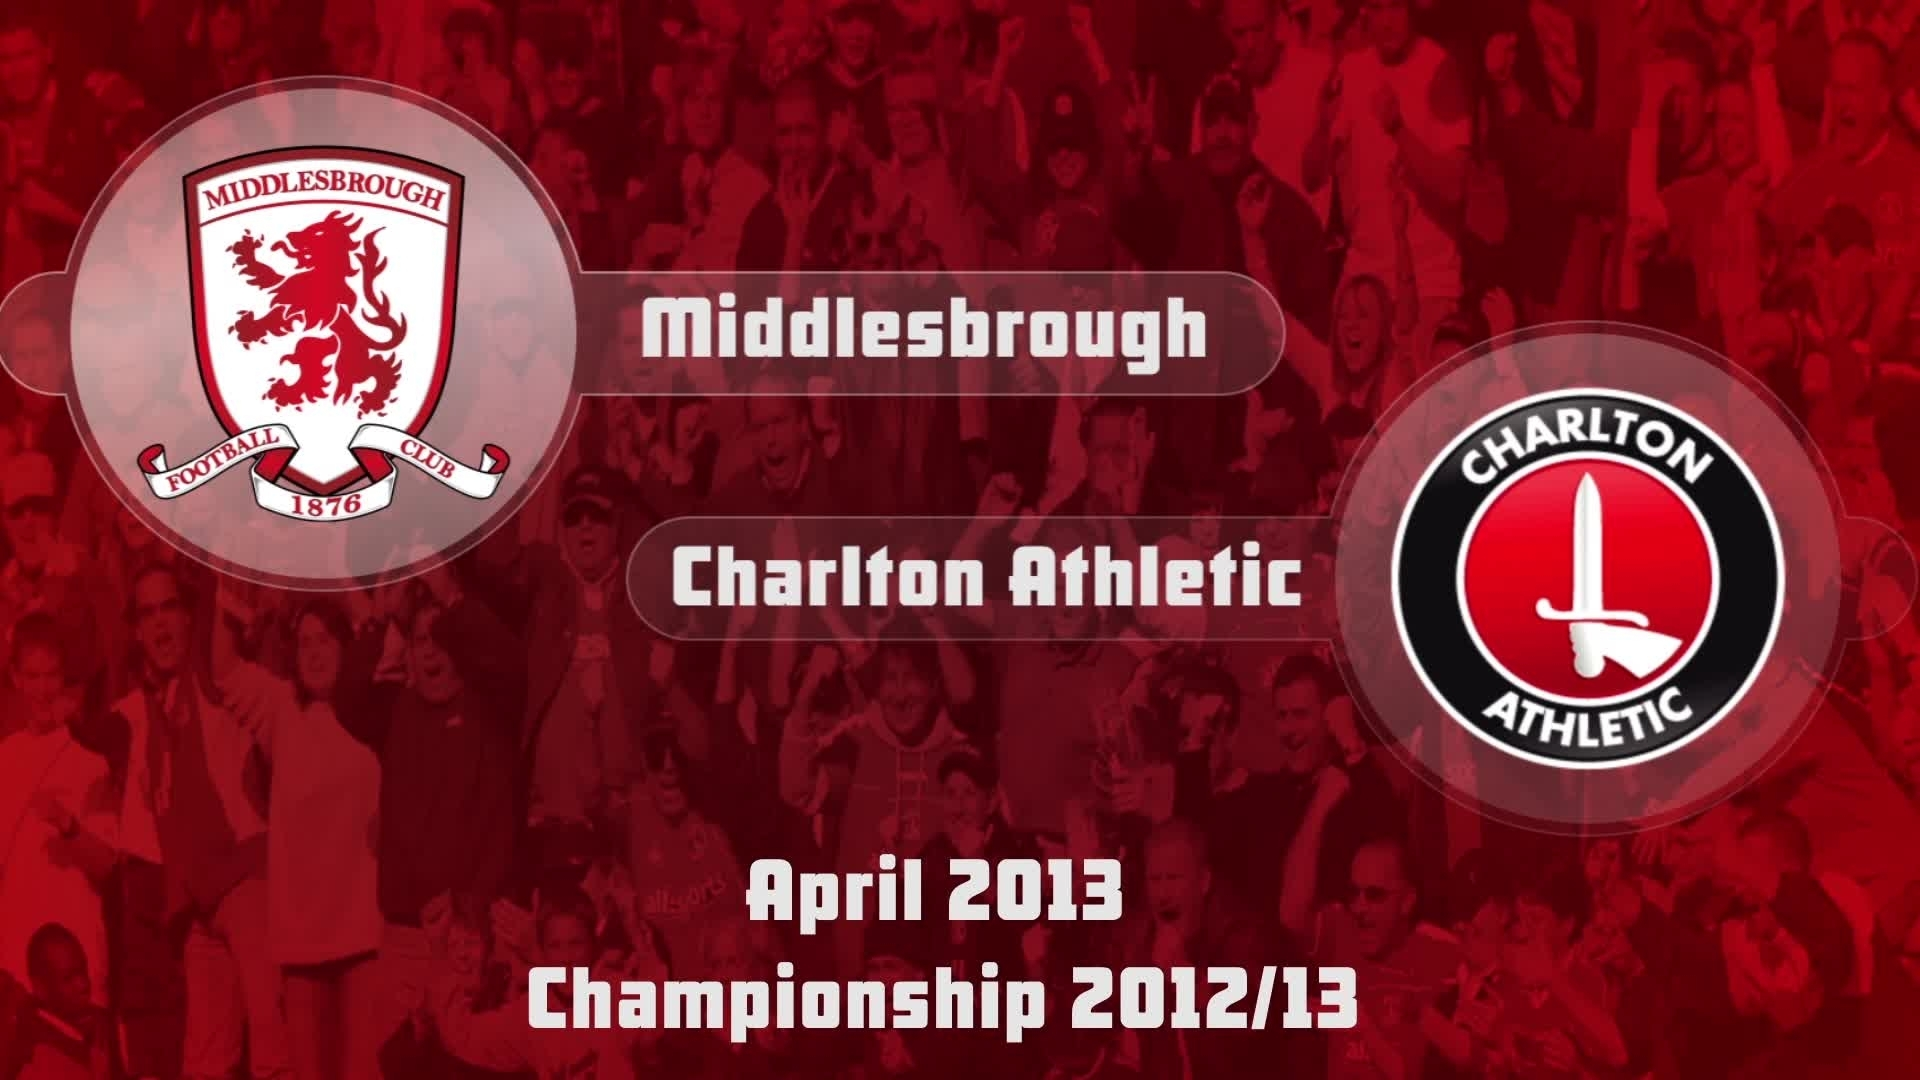 47 HIGHLIGHTS | Middlesbrough 2 Charlton 2 (April 2013)